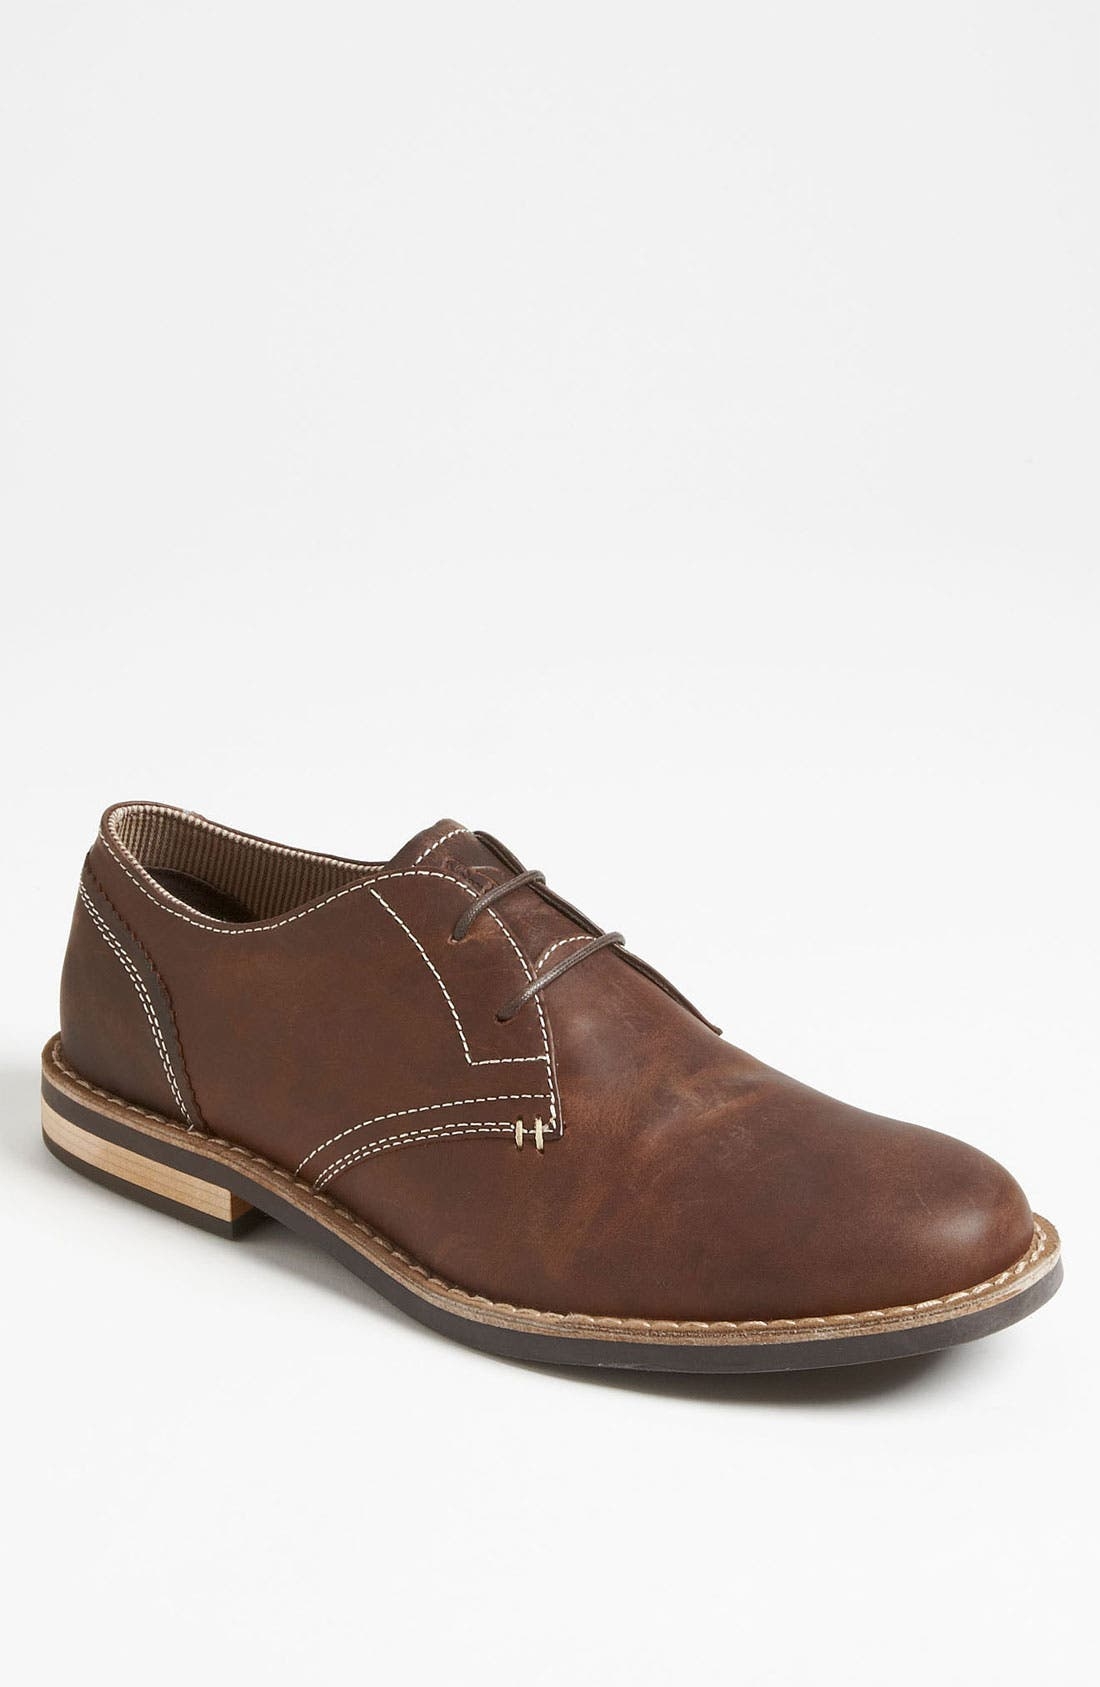 Alternate Image 1 Selected - Original Penguin 'Waylon' Buck Shoe